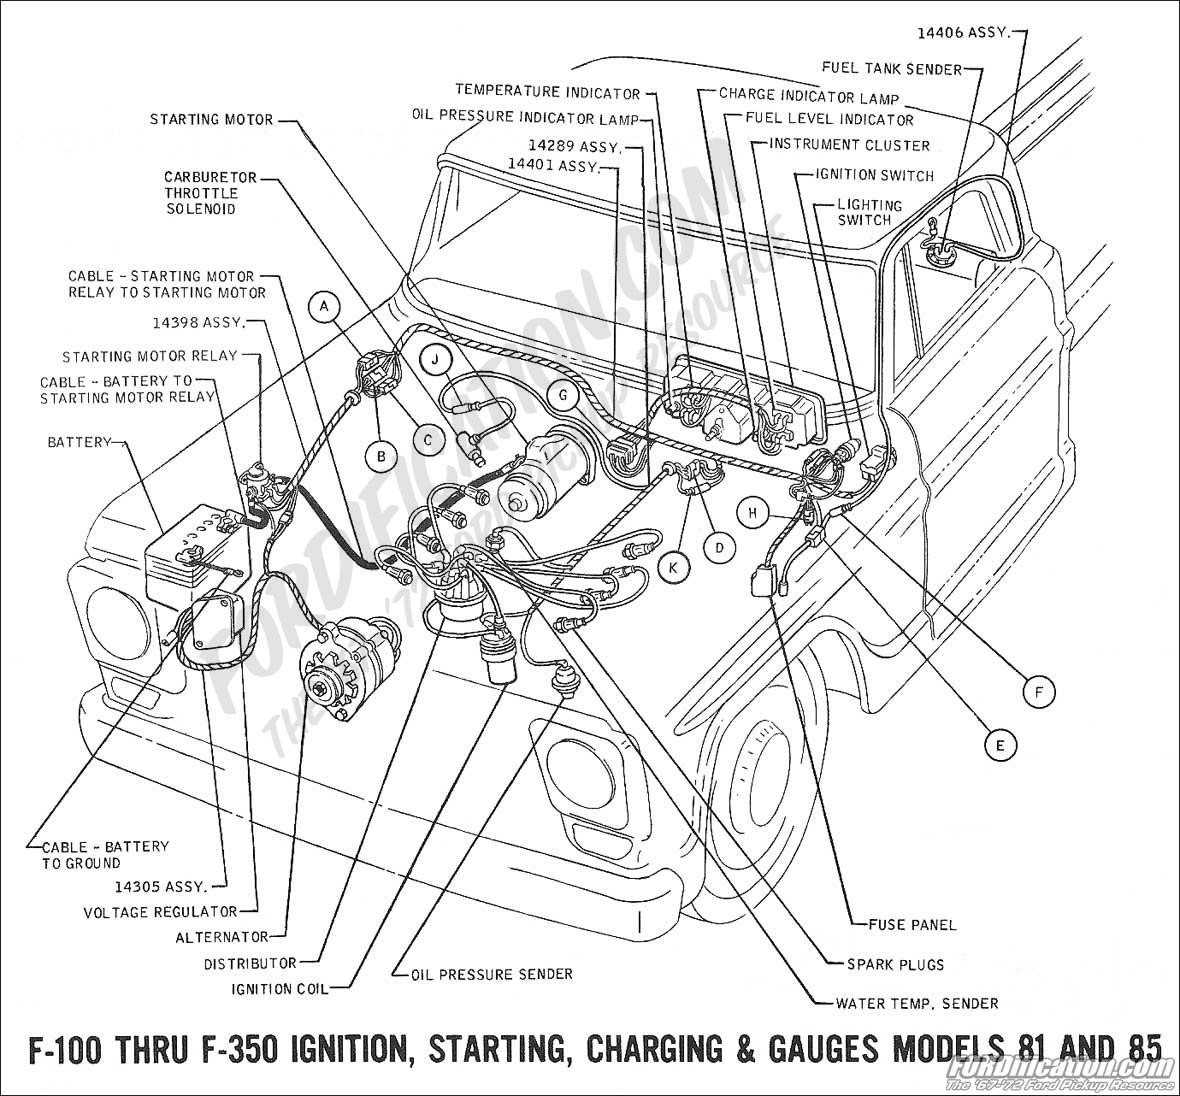 1972 Ford F100 Ke Light Wiring Diagram on 1964 corvette ignition wiring diagram